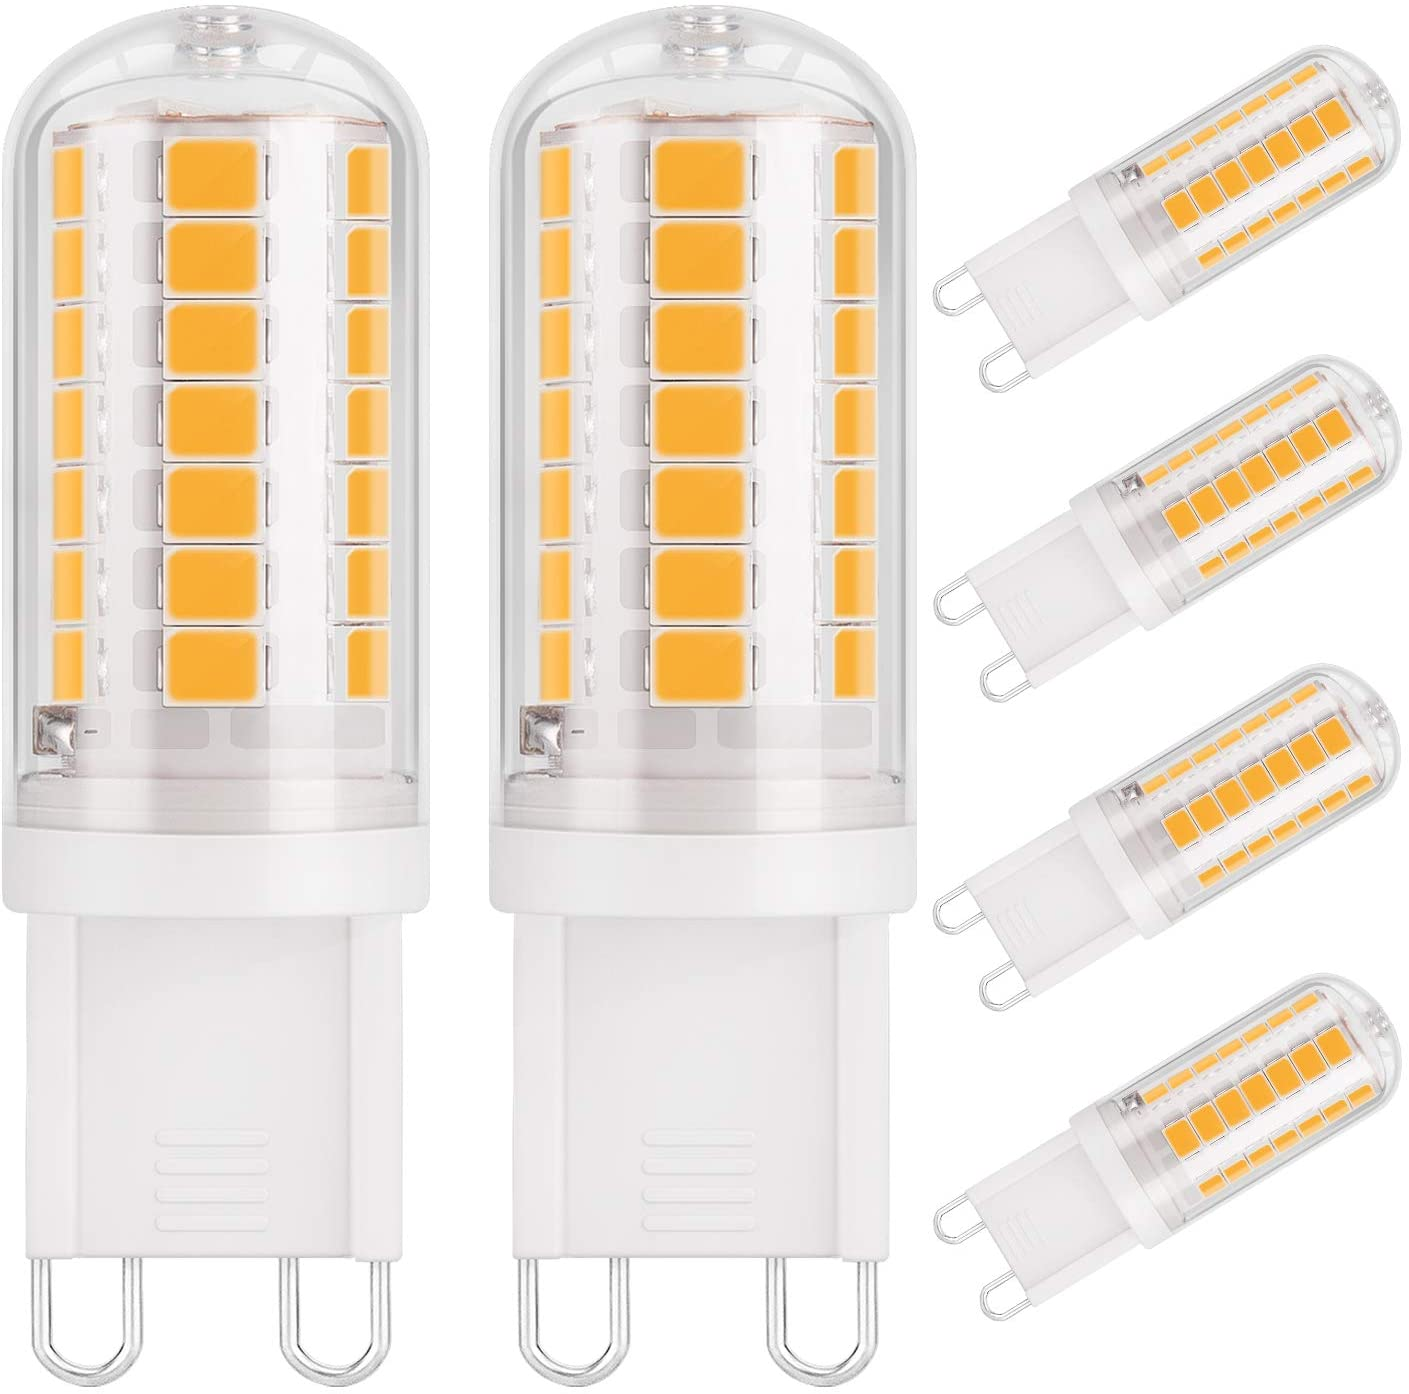 DiCUNO G9 120V LED Bulb 4W (40W Halogen Equivalent), Ceramic Base Light Bulb 430LM, Warm White 3000K, Non-Dimmable Replacement for Under Counter Cabinet, Ceiling Fan, Home Lighting, 6-Pack